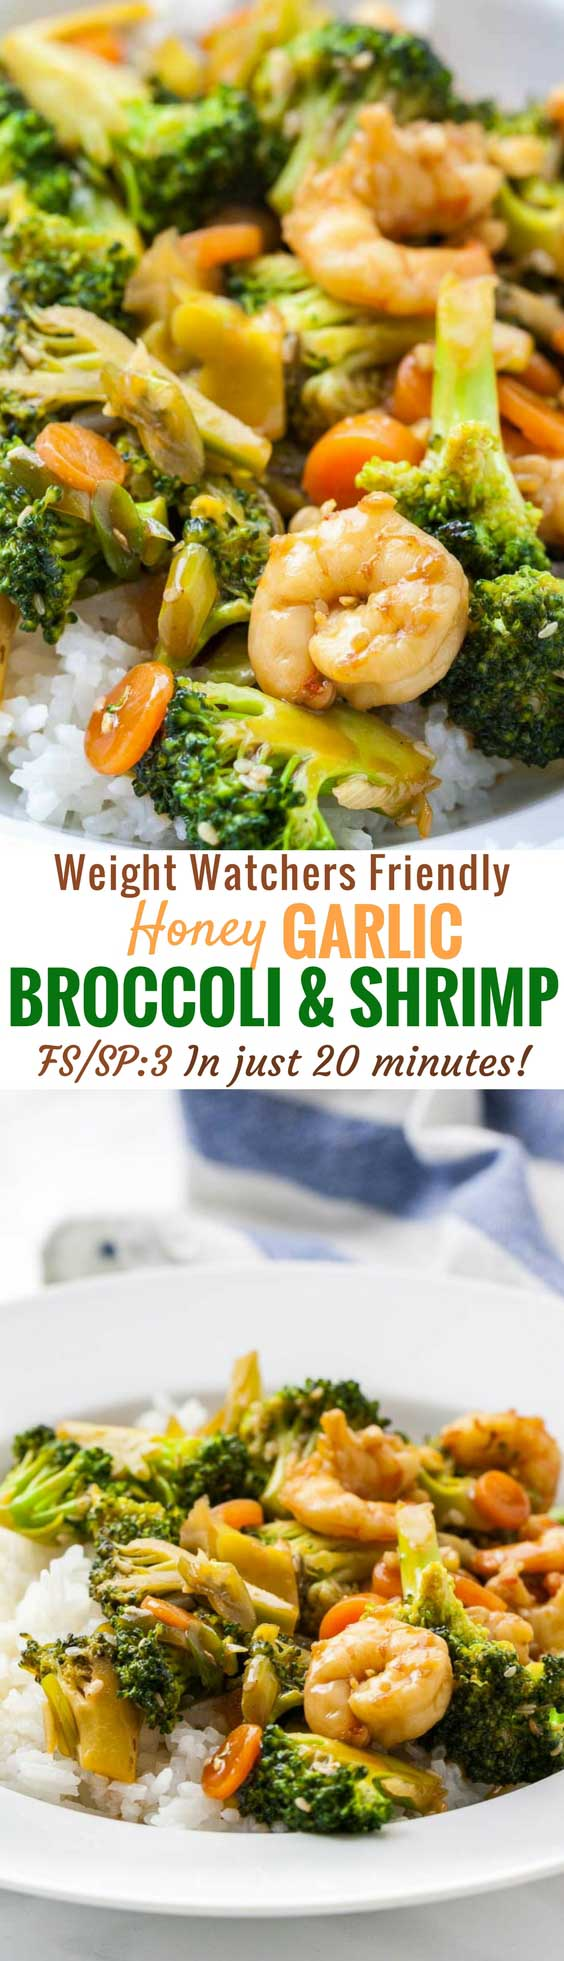 Honey Garlic Shrimp and Broccoli is one of my favorite easyAsian disheswith a flavorful sauce and tender vegetables that can be made in less than 20 minutes with just a few ingredients. It's super easy to put together and has just 3 weight watchers smart points per serving! #shrimp #weightwatchers #freestyle #lightmeal #stirfry #weeknightmeal #easydinner